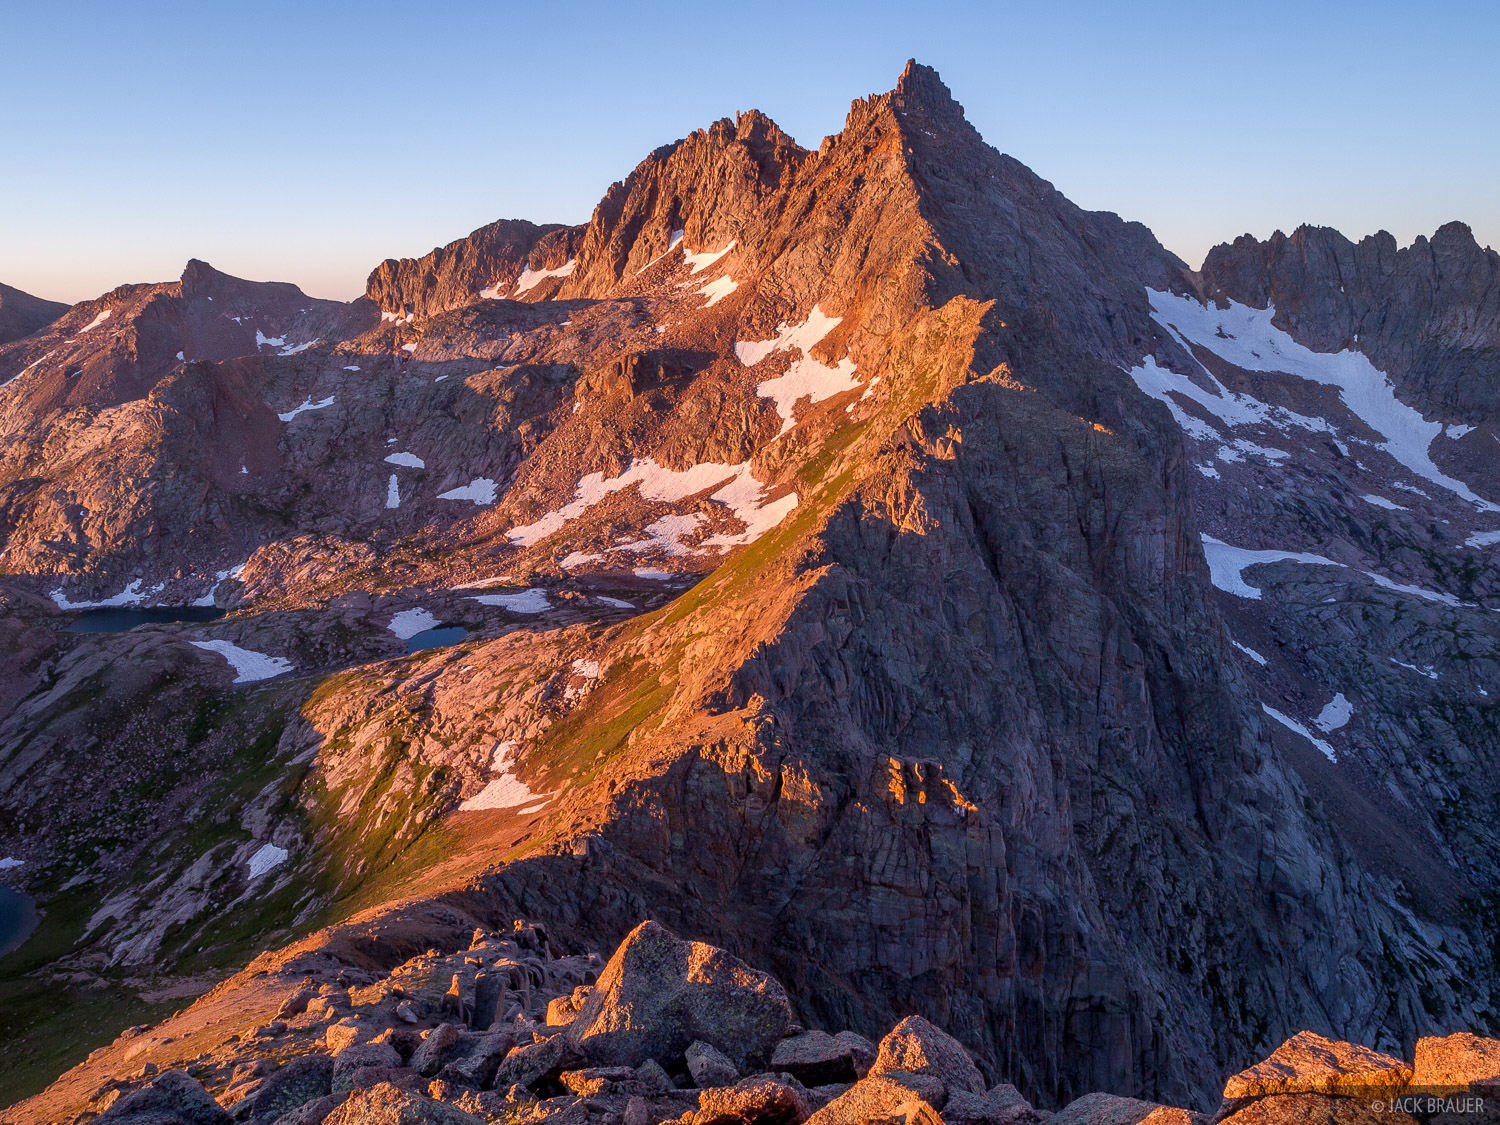 Colorado, Needle Mountains, San Juan Mountains, Weminuche Wilderness, Knife Point, sunrise, 14er, photo